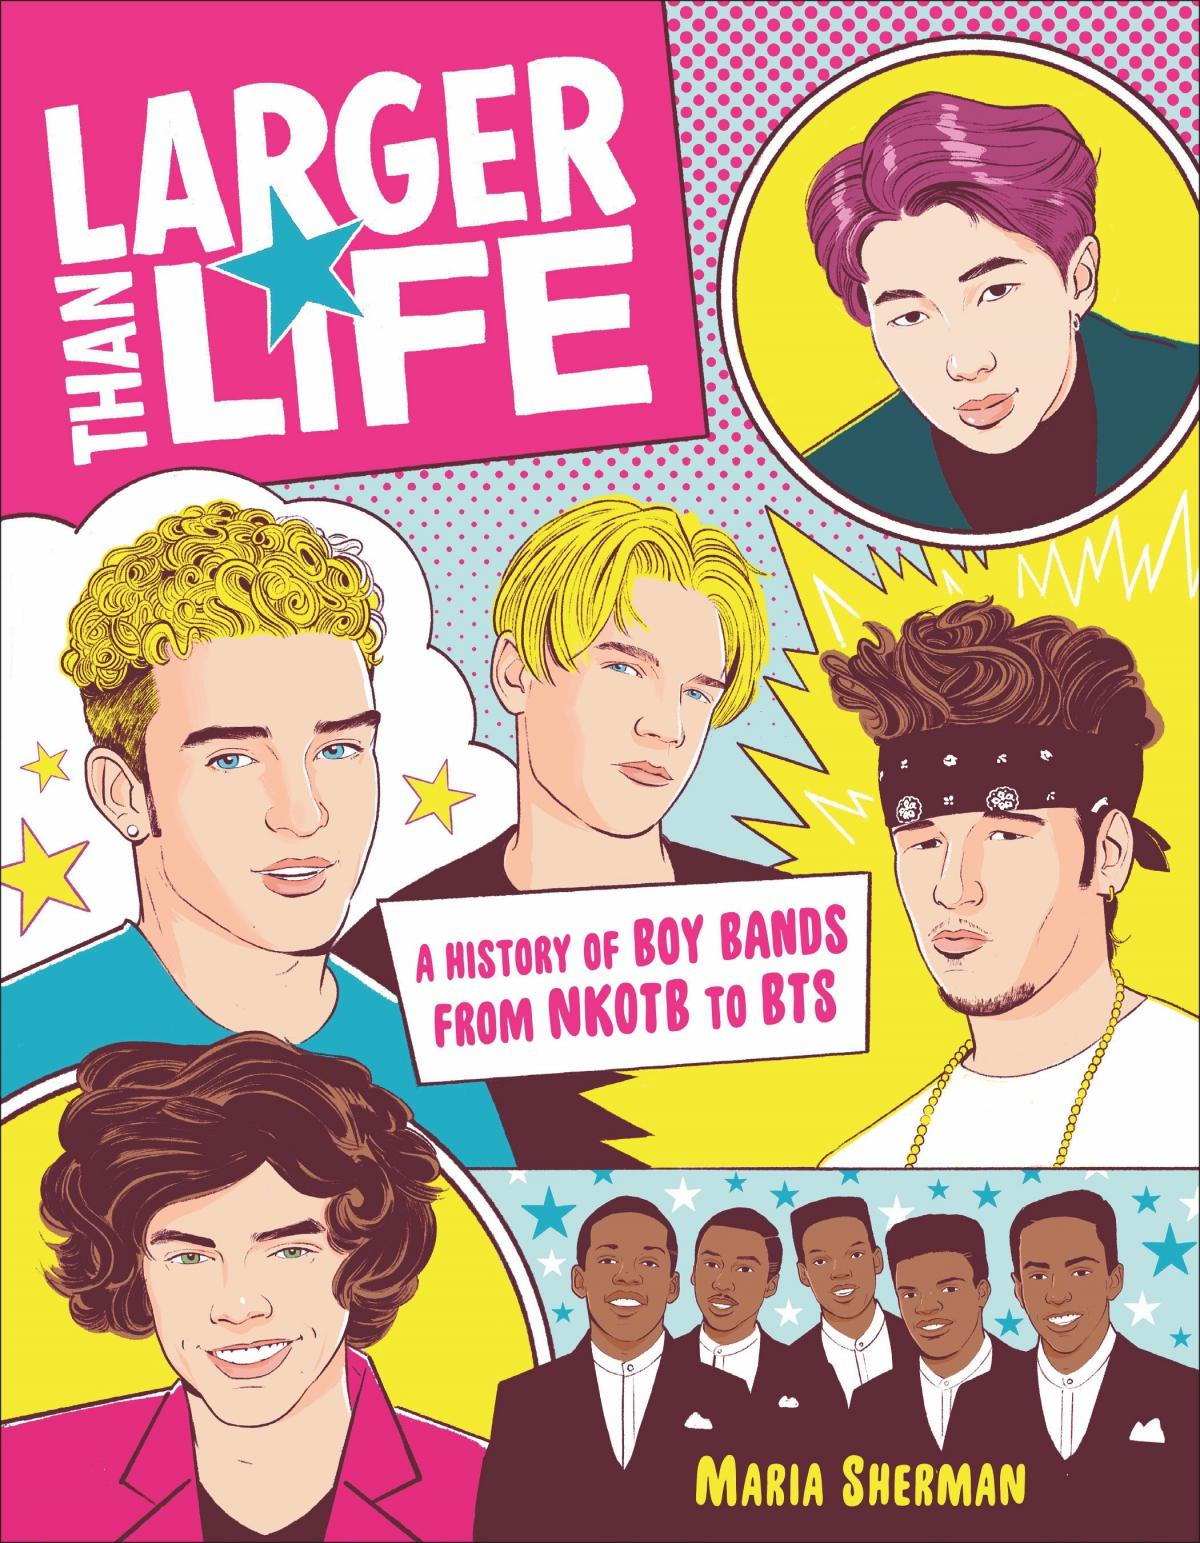 Larger Than Life: A History of Boy Bands from NKOTB to BTS, by Maria Sherman